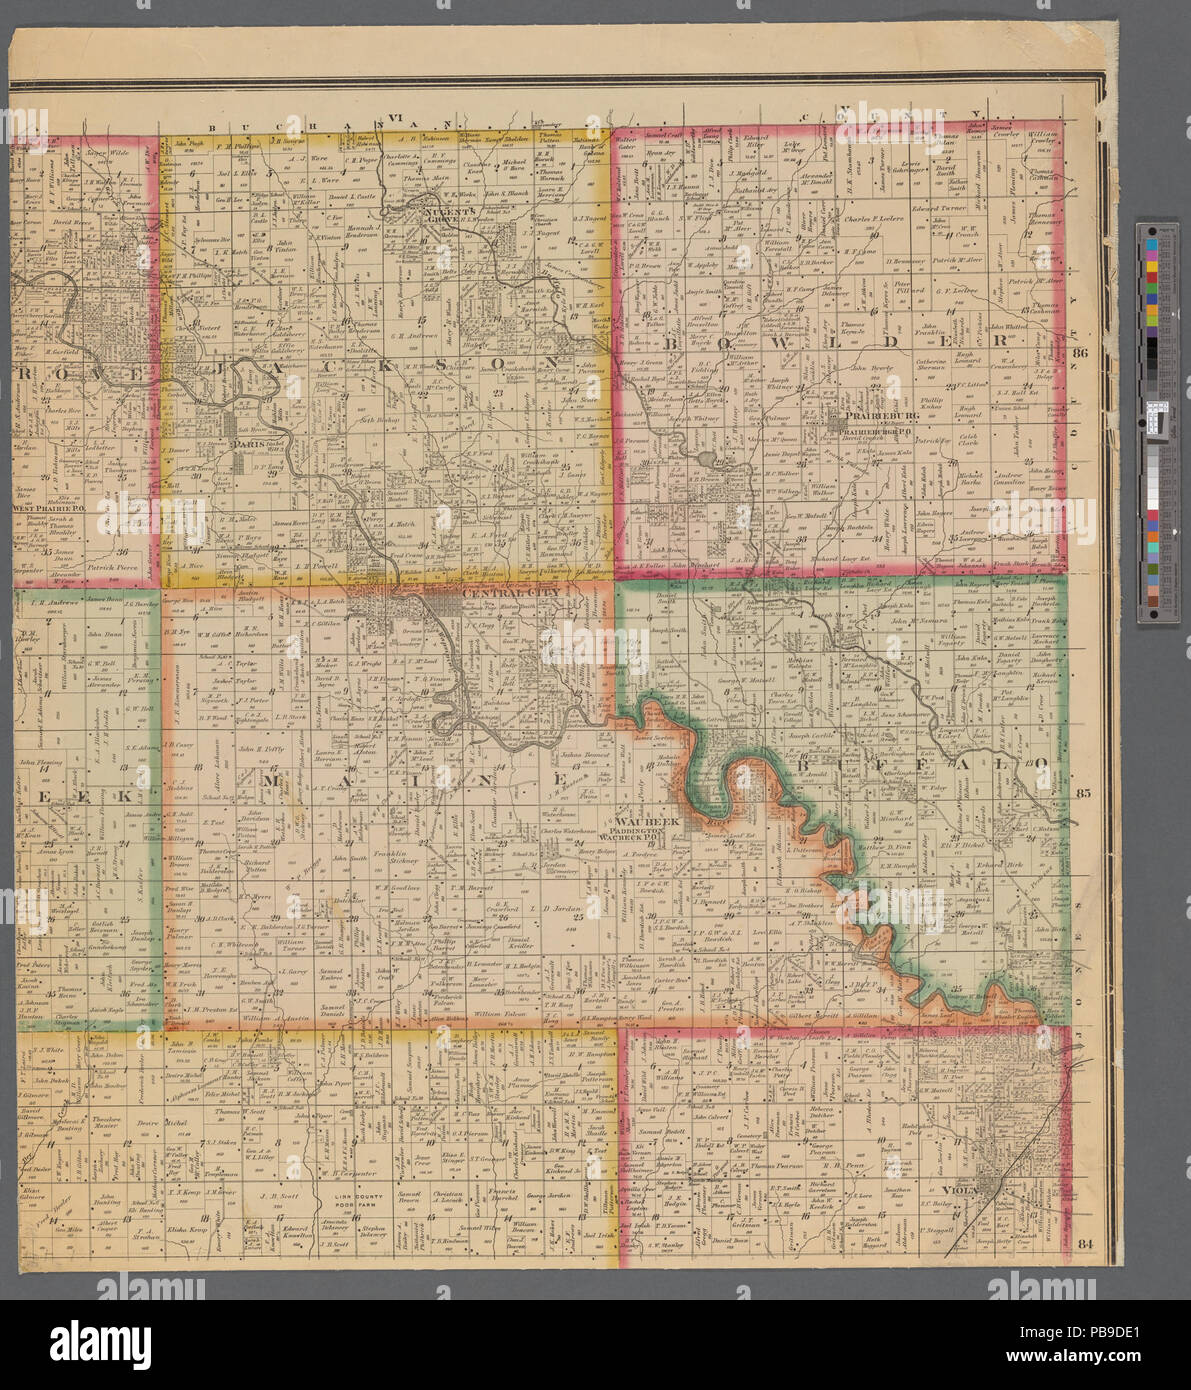 993 Map Of Linn County Iowa Nypl B11655881 5366946 Stock Photo